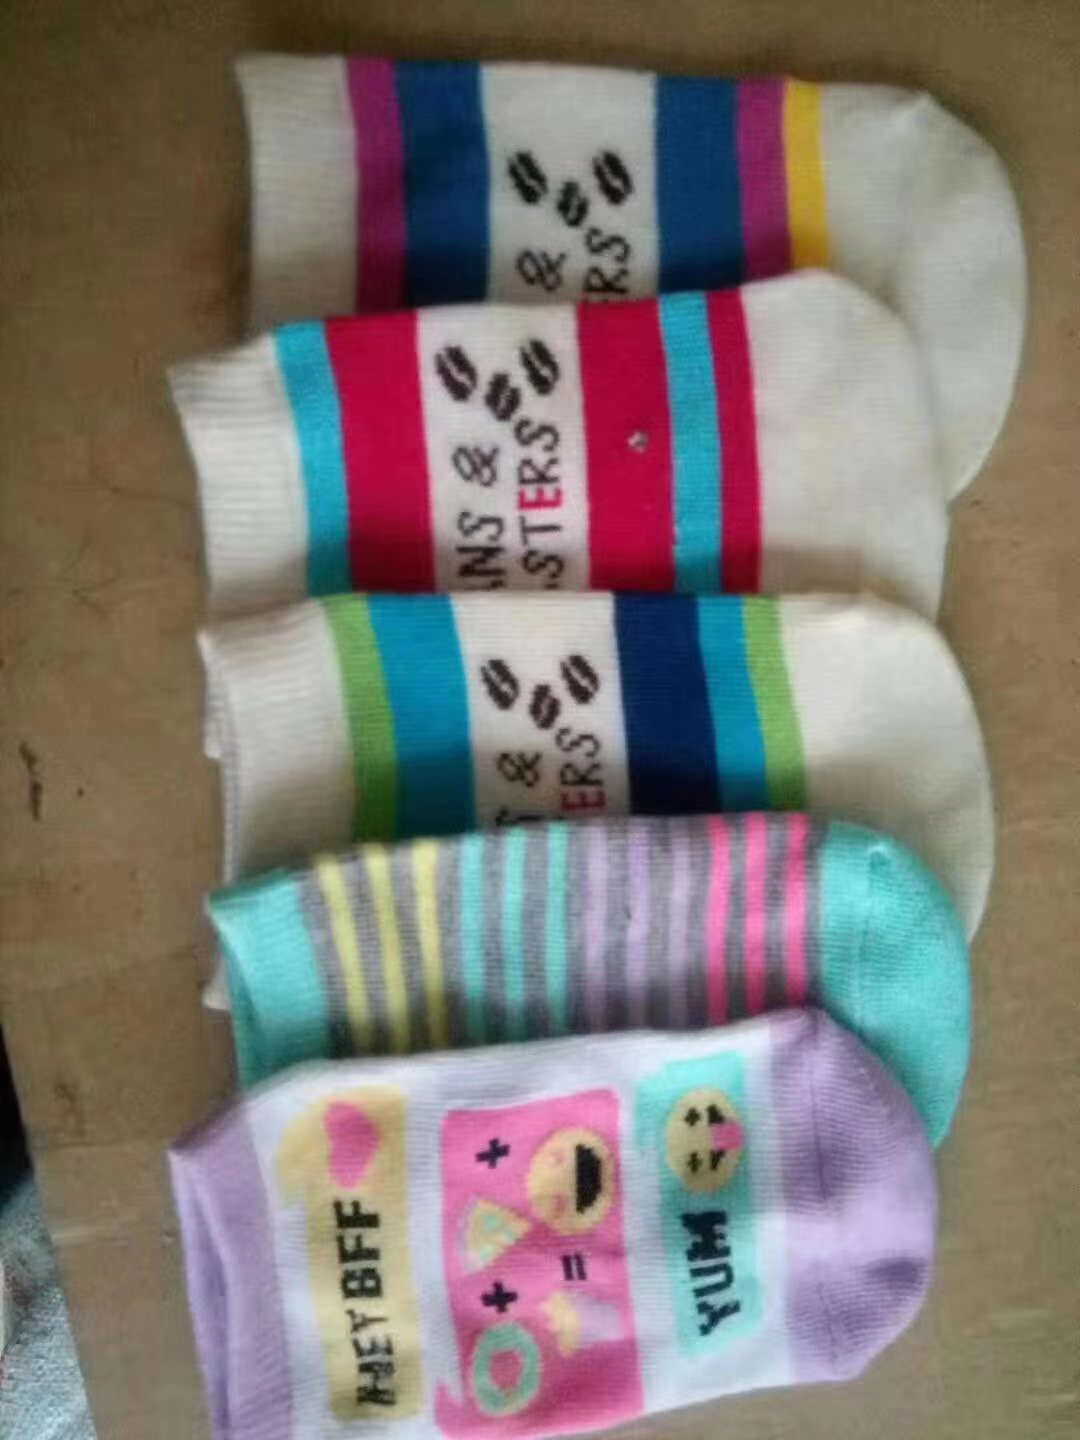 34355 - Baby Socks 100,000 pairs China